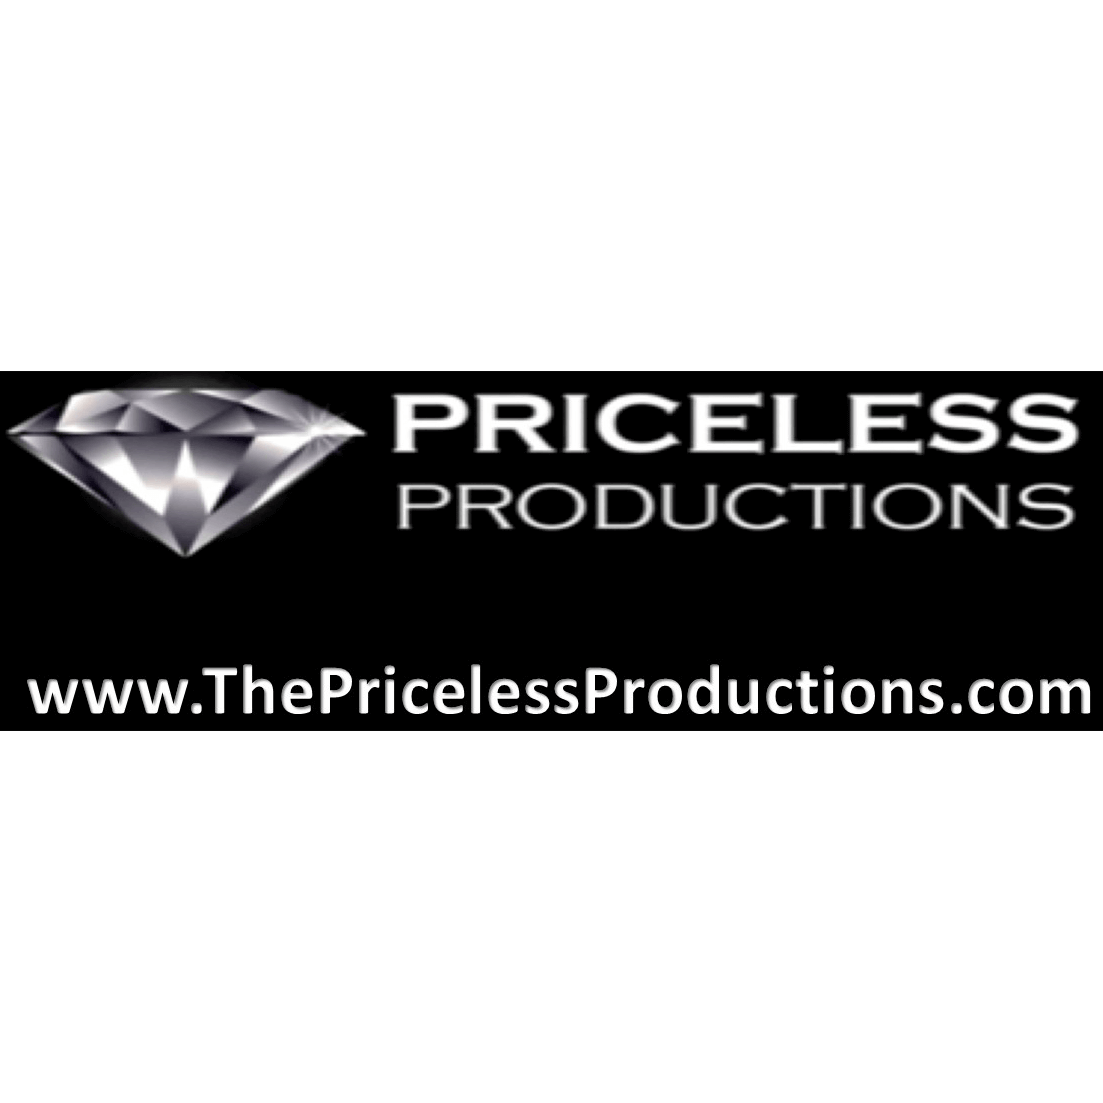 Priceless Productions